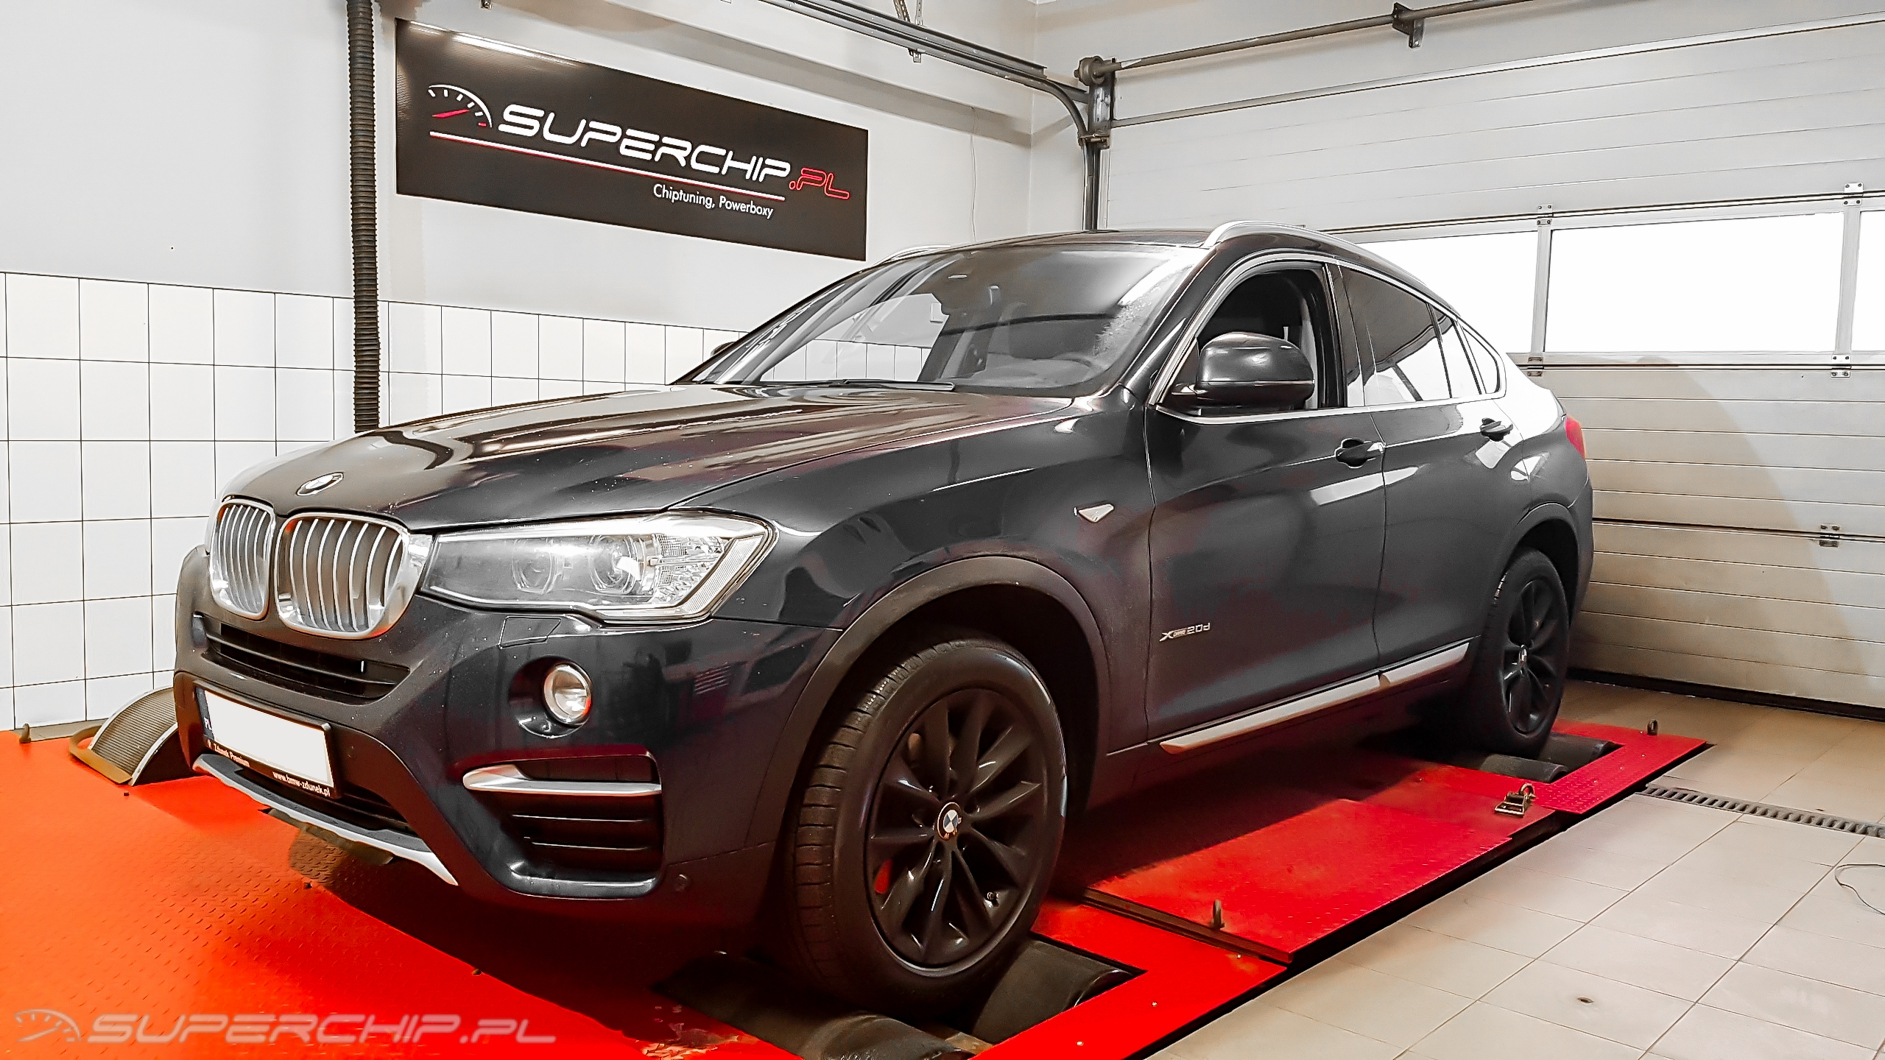 Power box BMW X4 20d 190 KM 140 kW